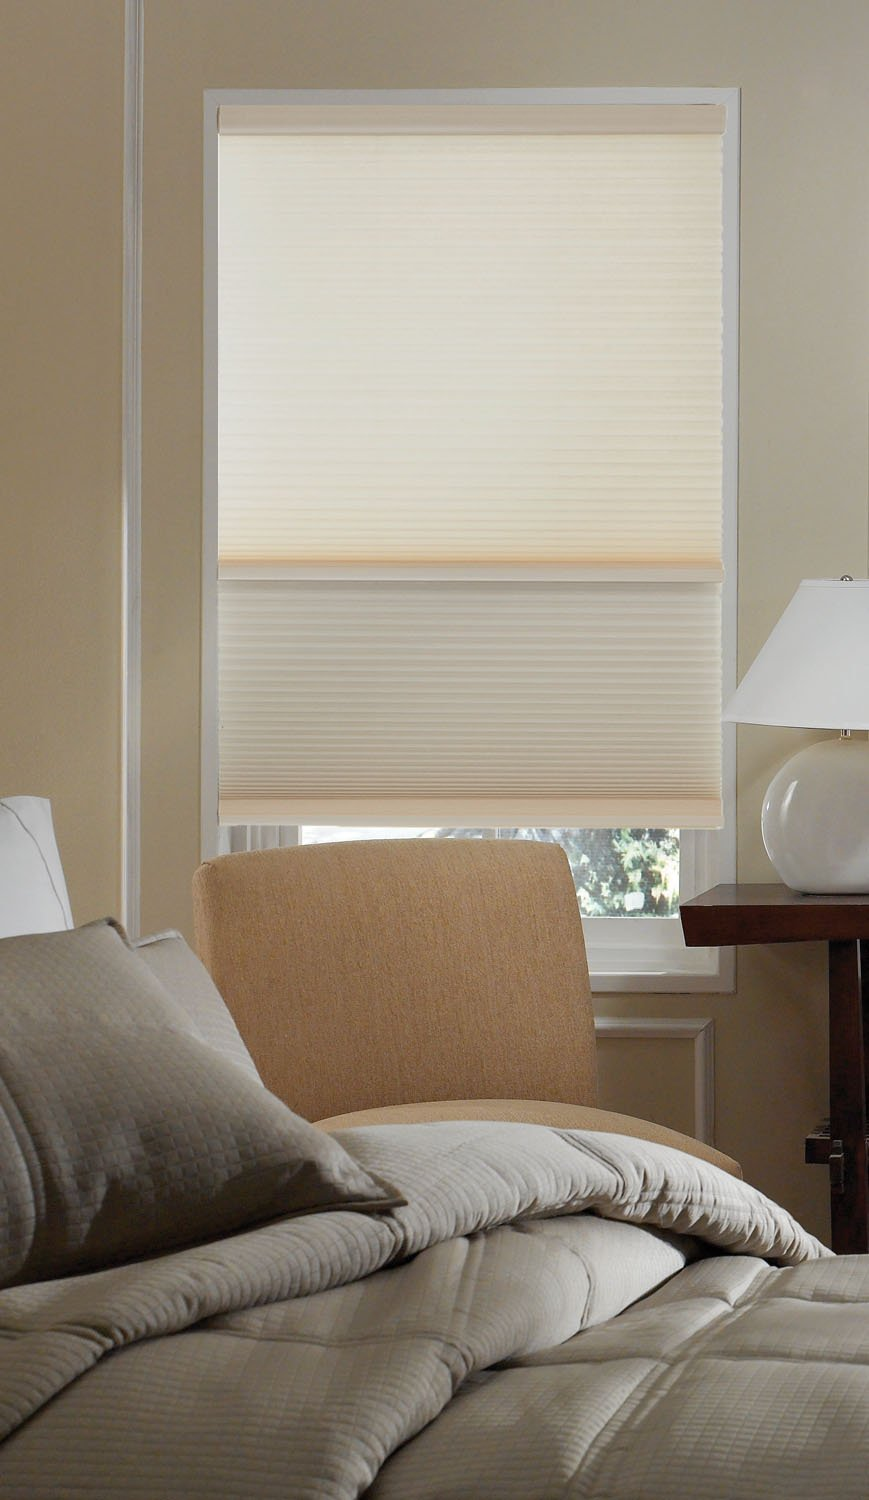 Cordless Day/Night Cellular Shade, 2 shades in 1-Blackout and Light Filtering in one shade. 51W x 63H, Cool White